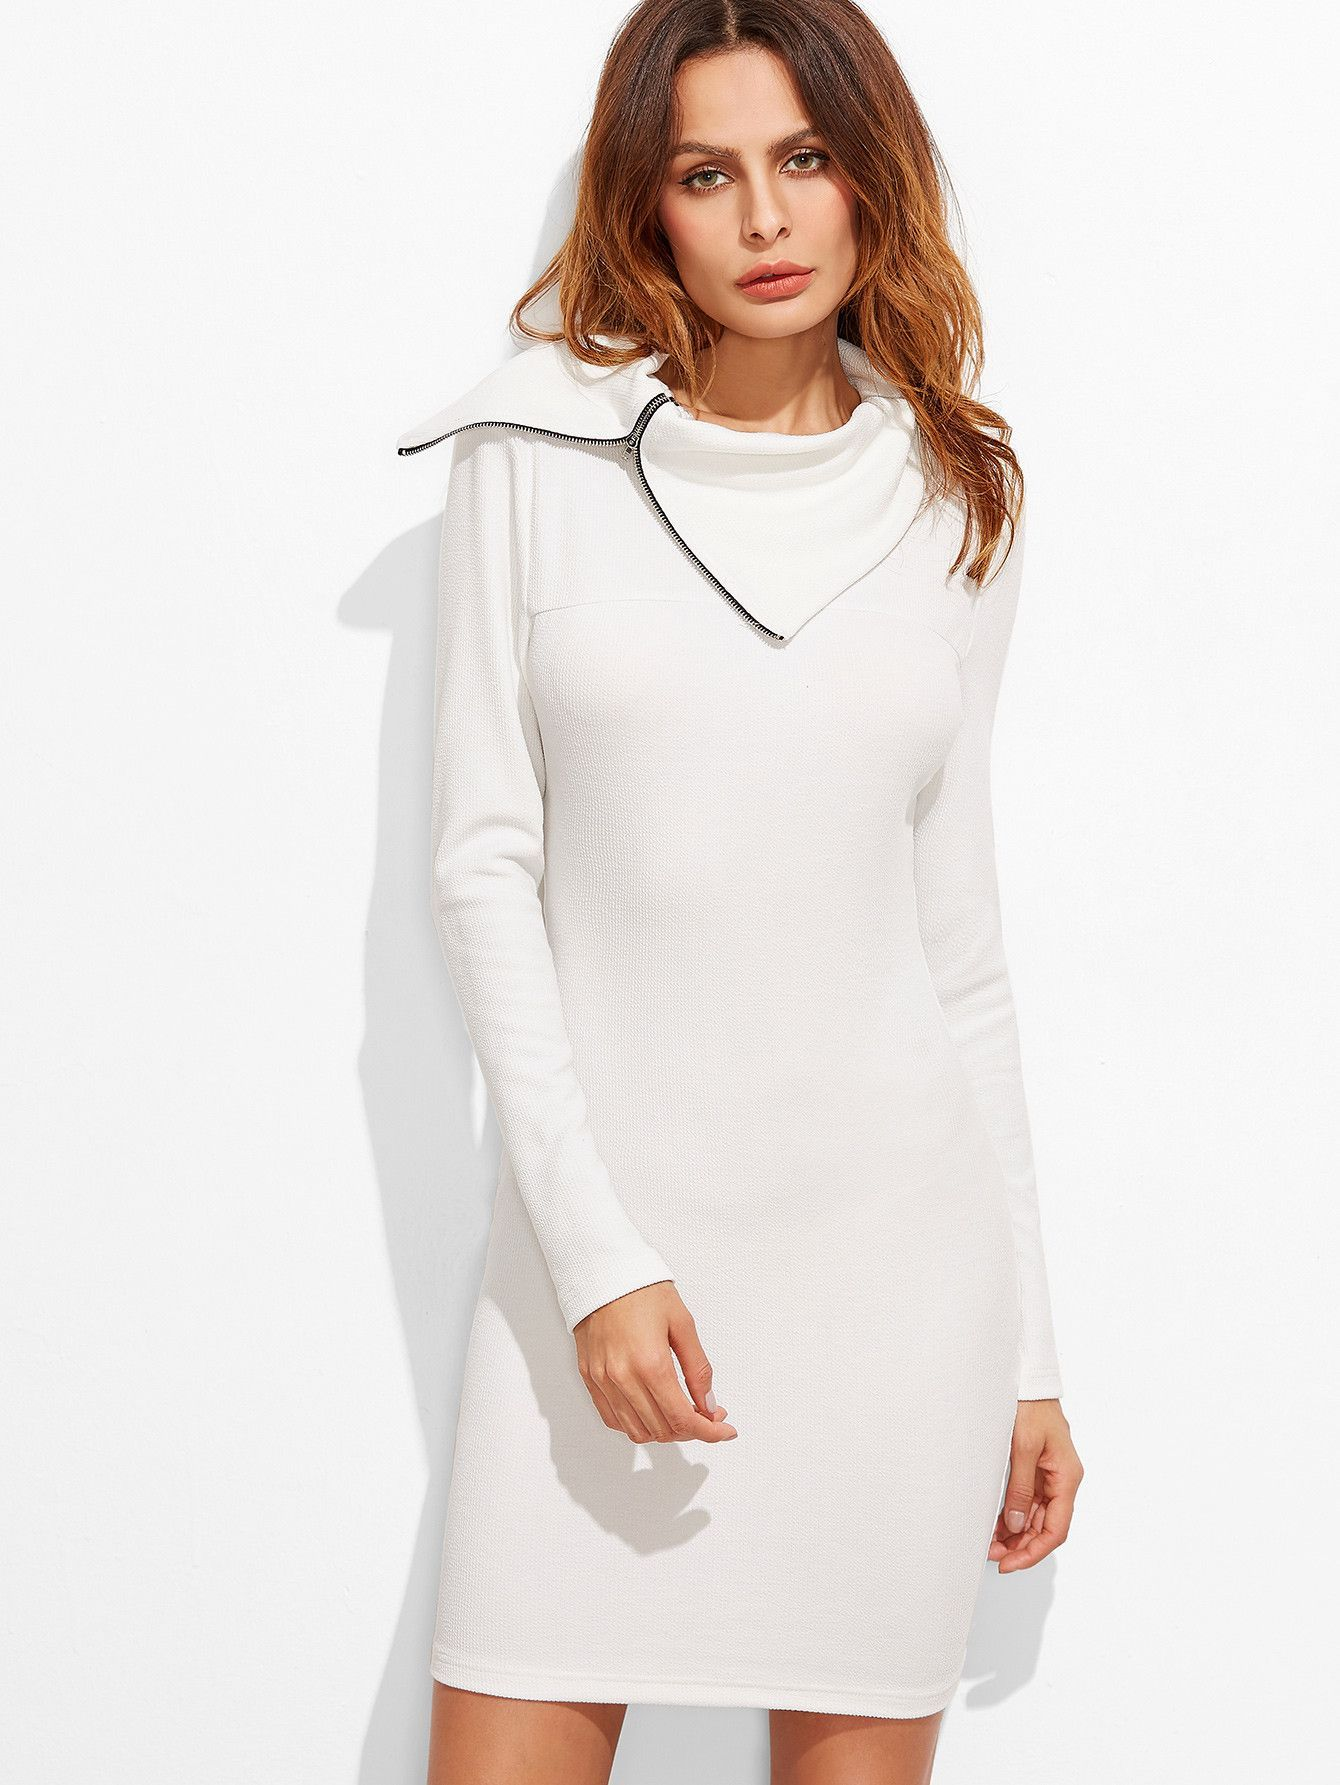 White Bodycon Zipper Turtleneck Dress (With images